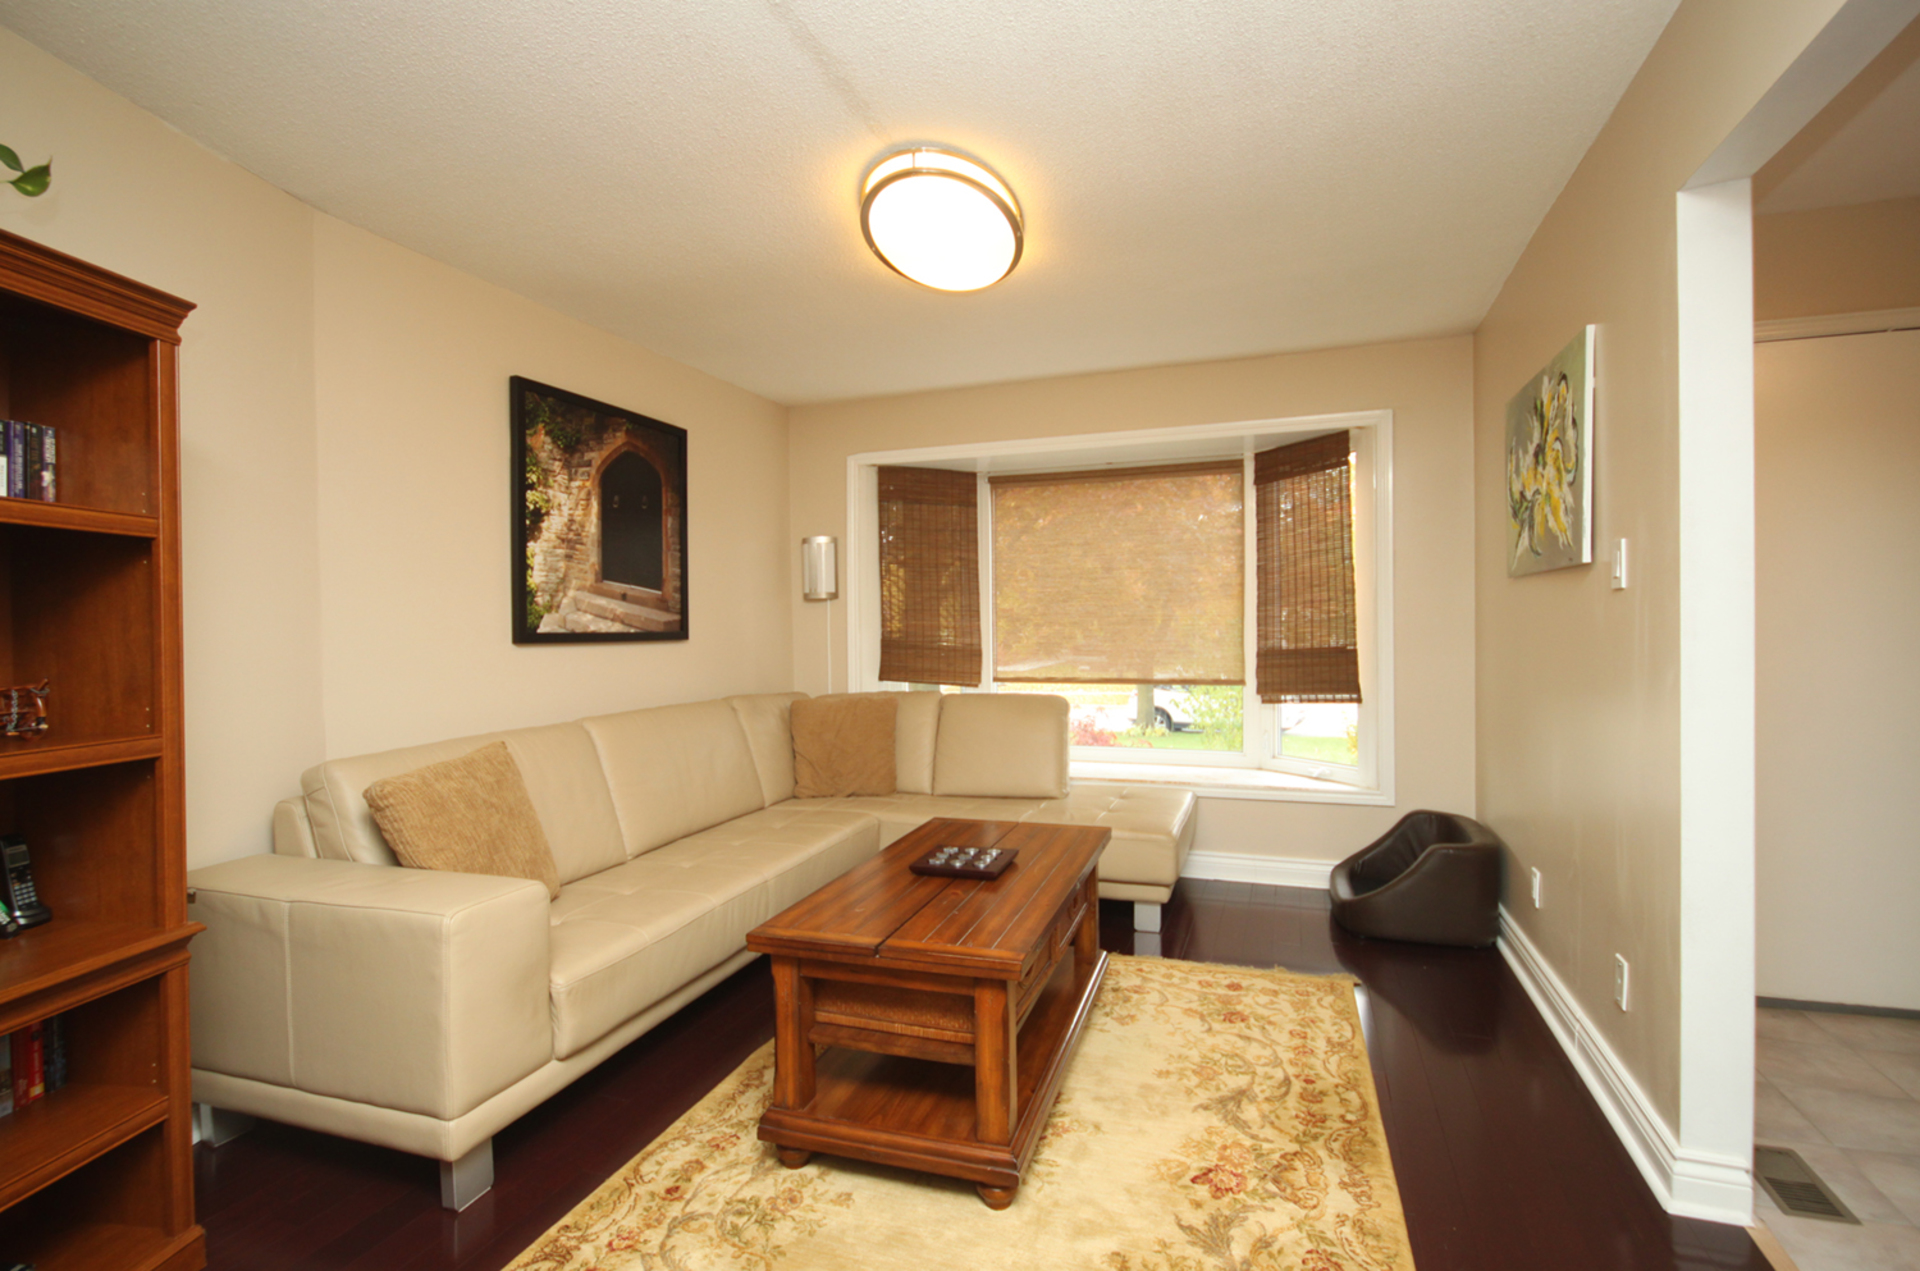 Family Room at 14 Gretman Crescent, Aileen-Willowbrook, Markham